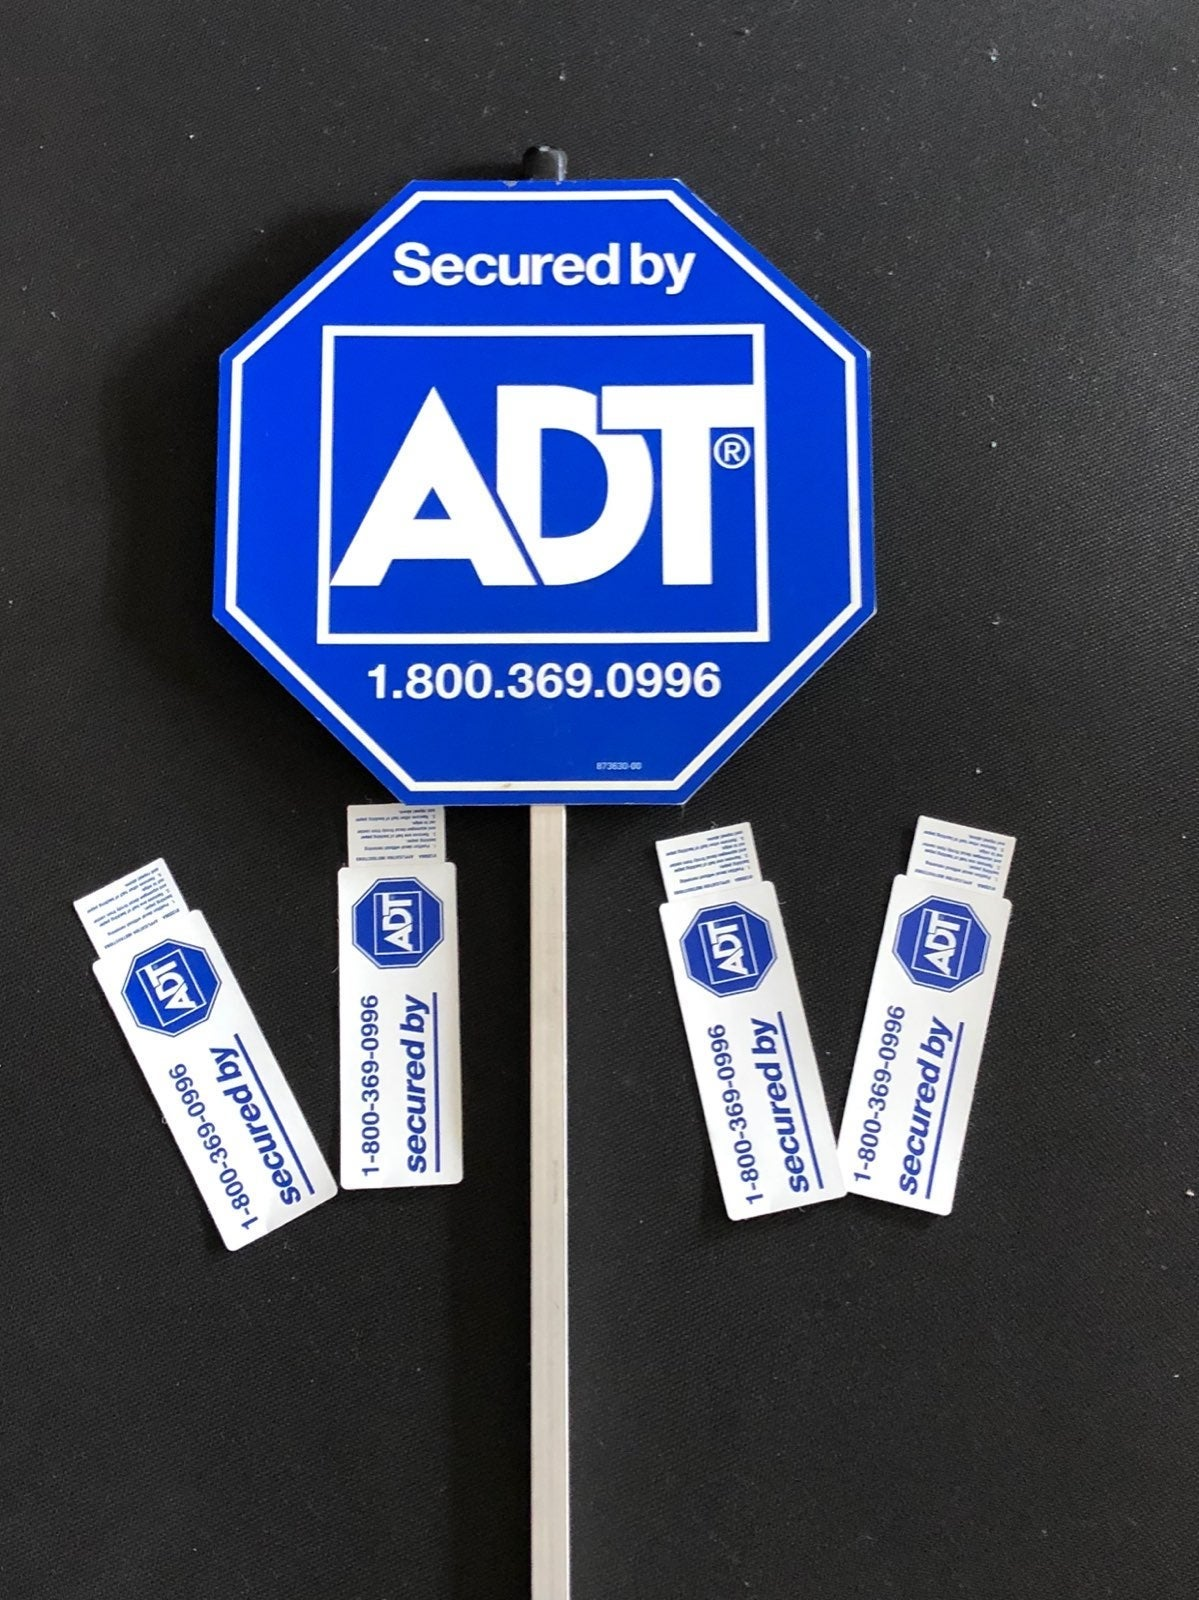 ADT sign and 4 window stickers